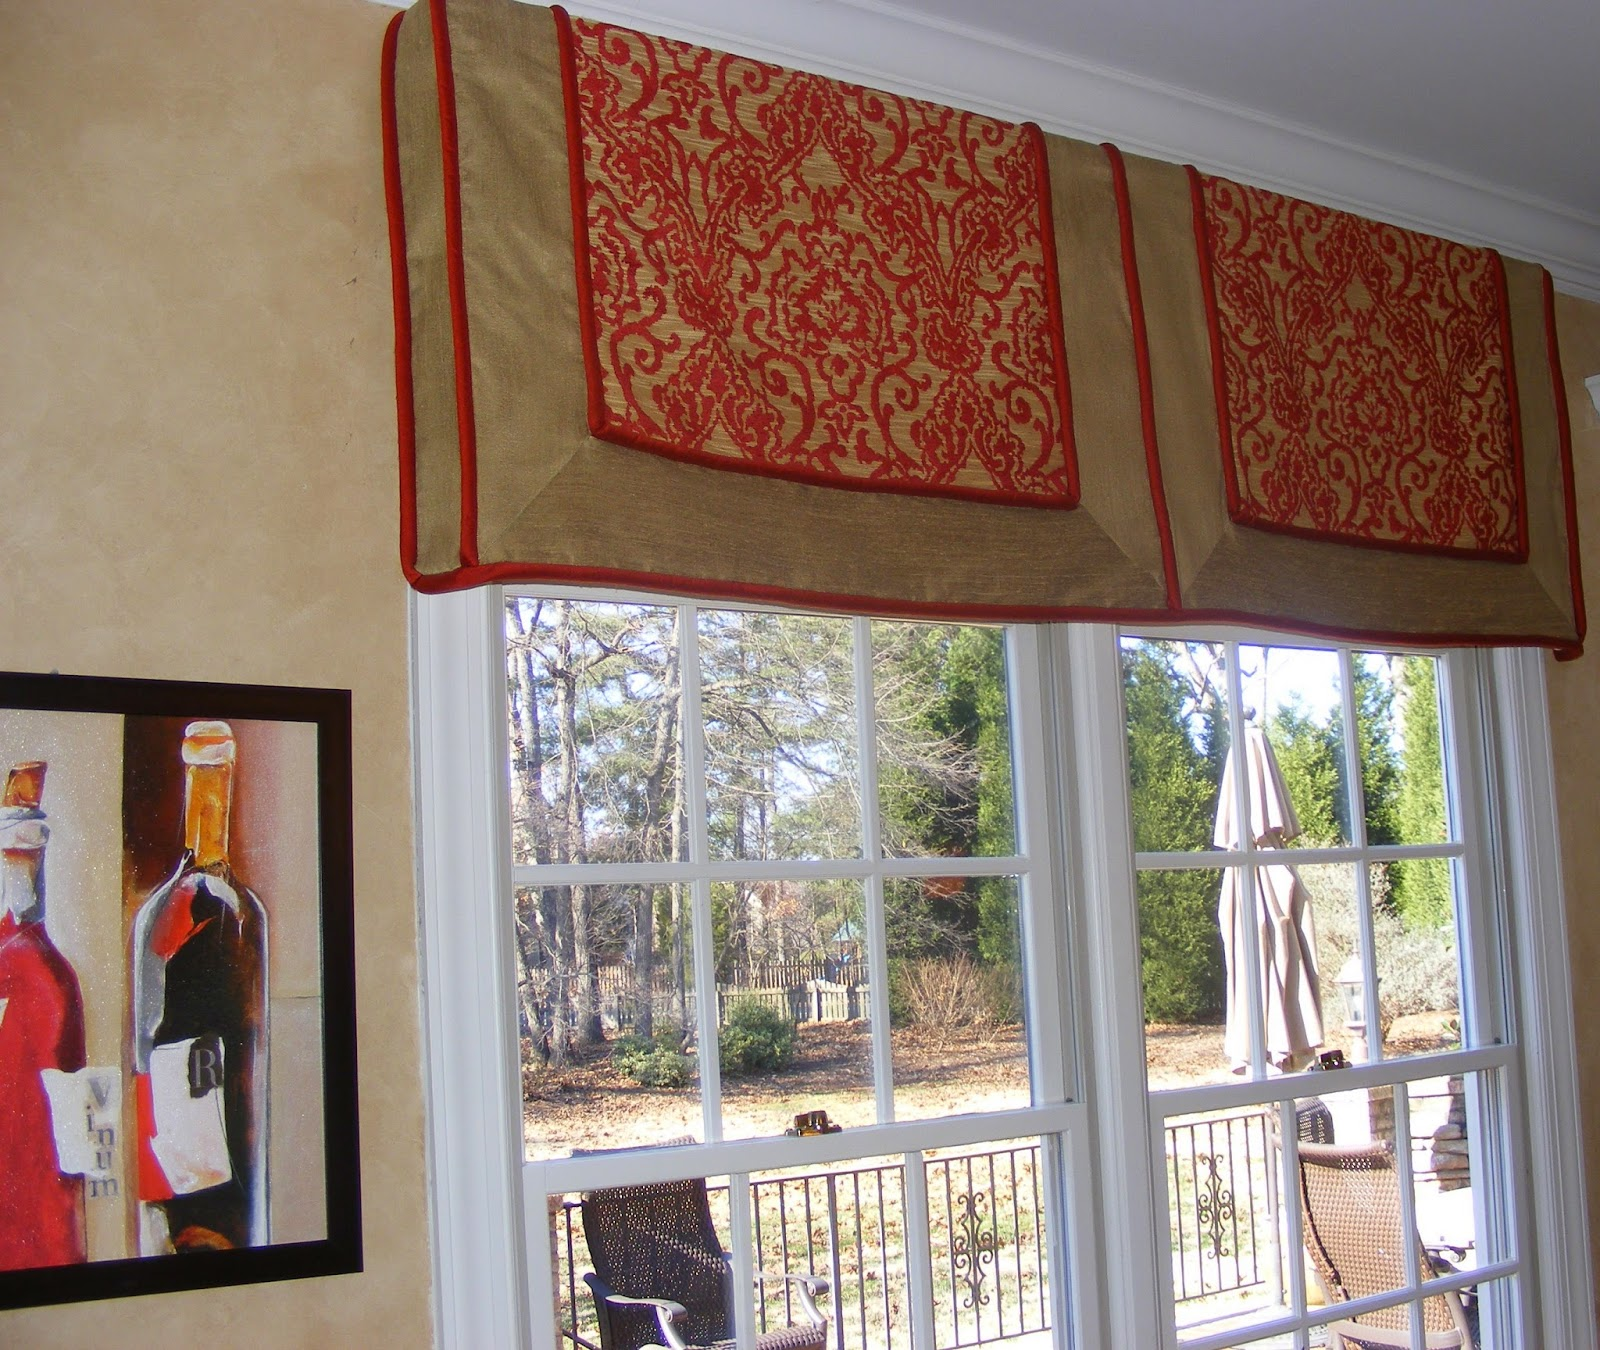 These Are Popular Because They Make Windows Look Much Bigger! They Add  Color, Texture, And Eye Appeal To A Room. Window Valances Can Also Solve  Privacy ...